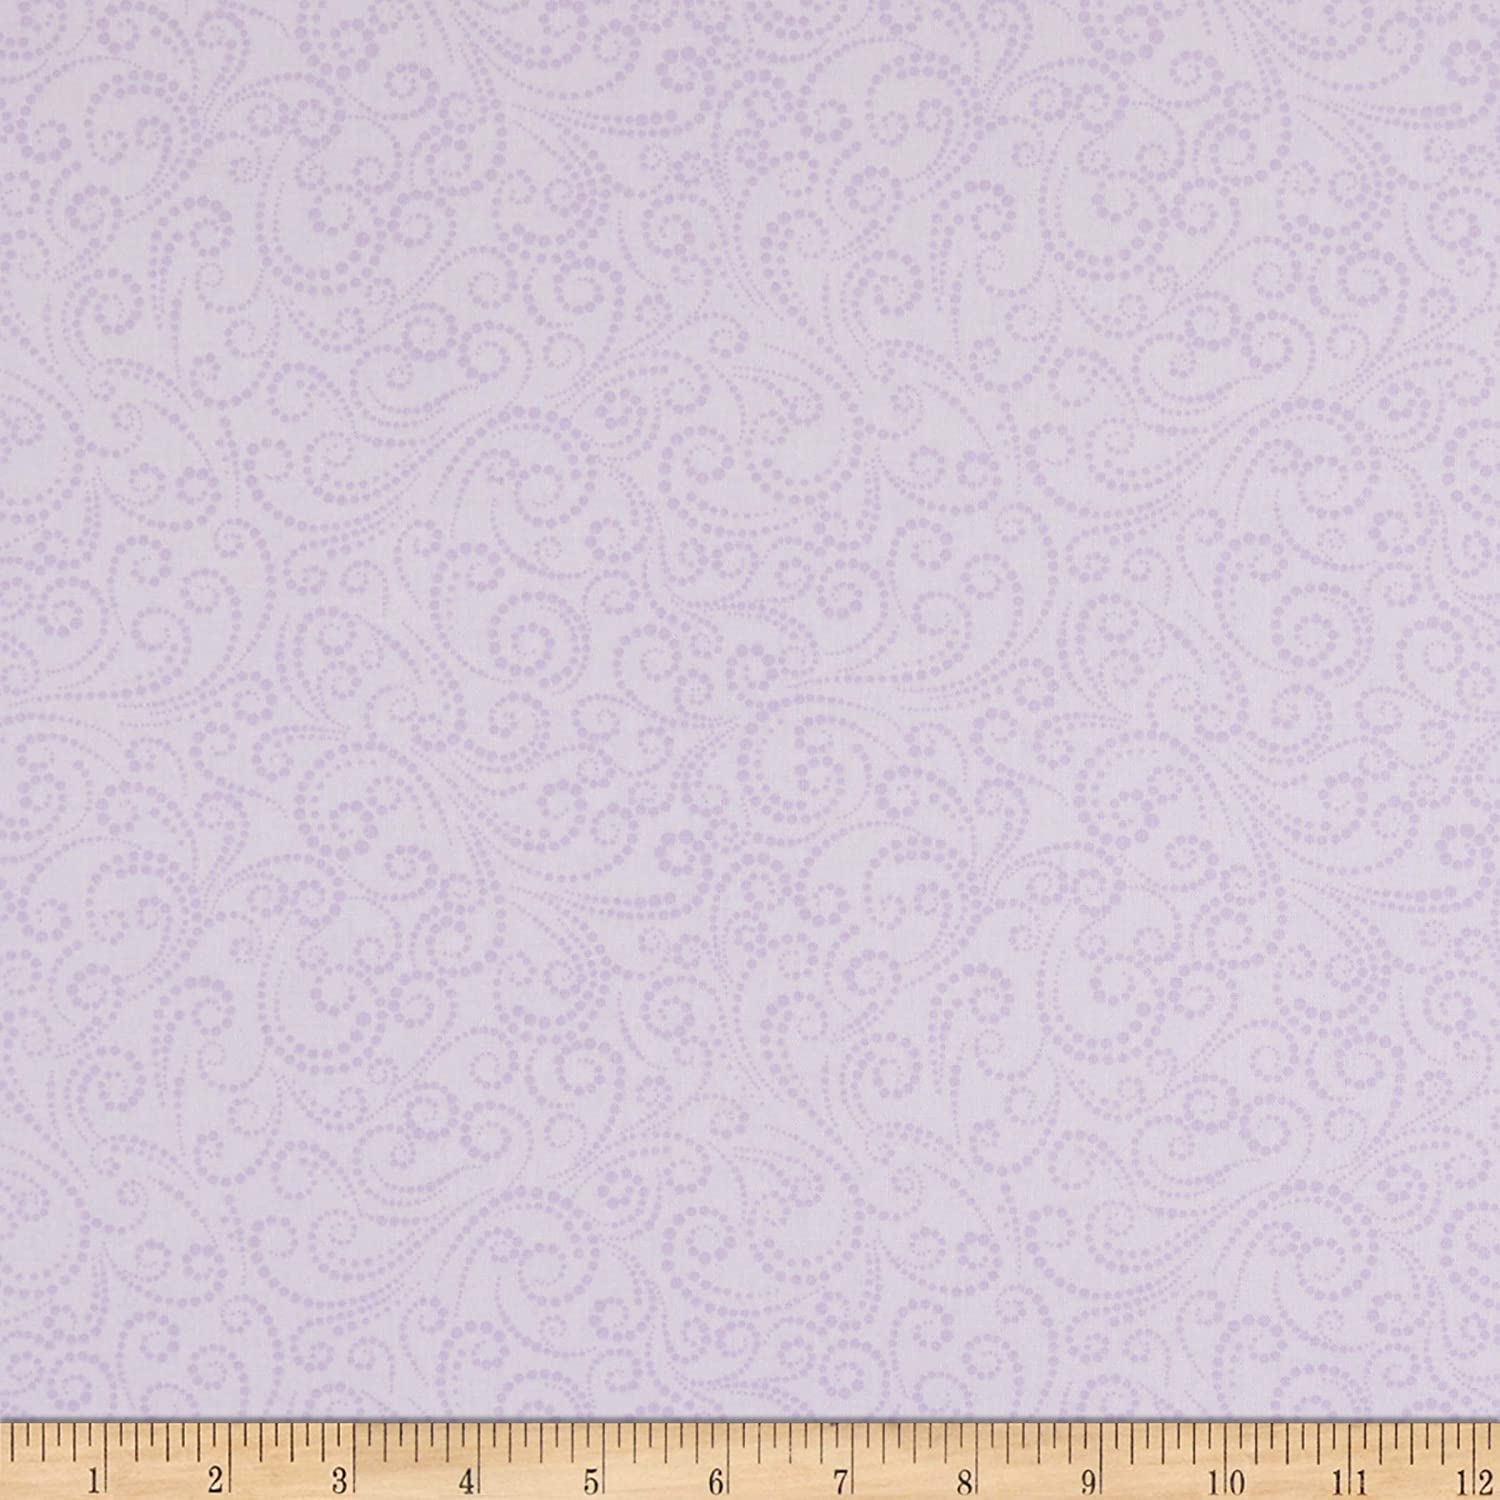 Benartex Classic Scrolls And Blenders Dotted Scroll Lilac Quilt Fabric By The Yard